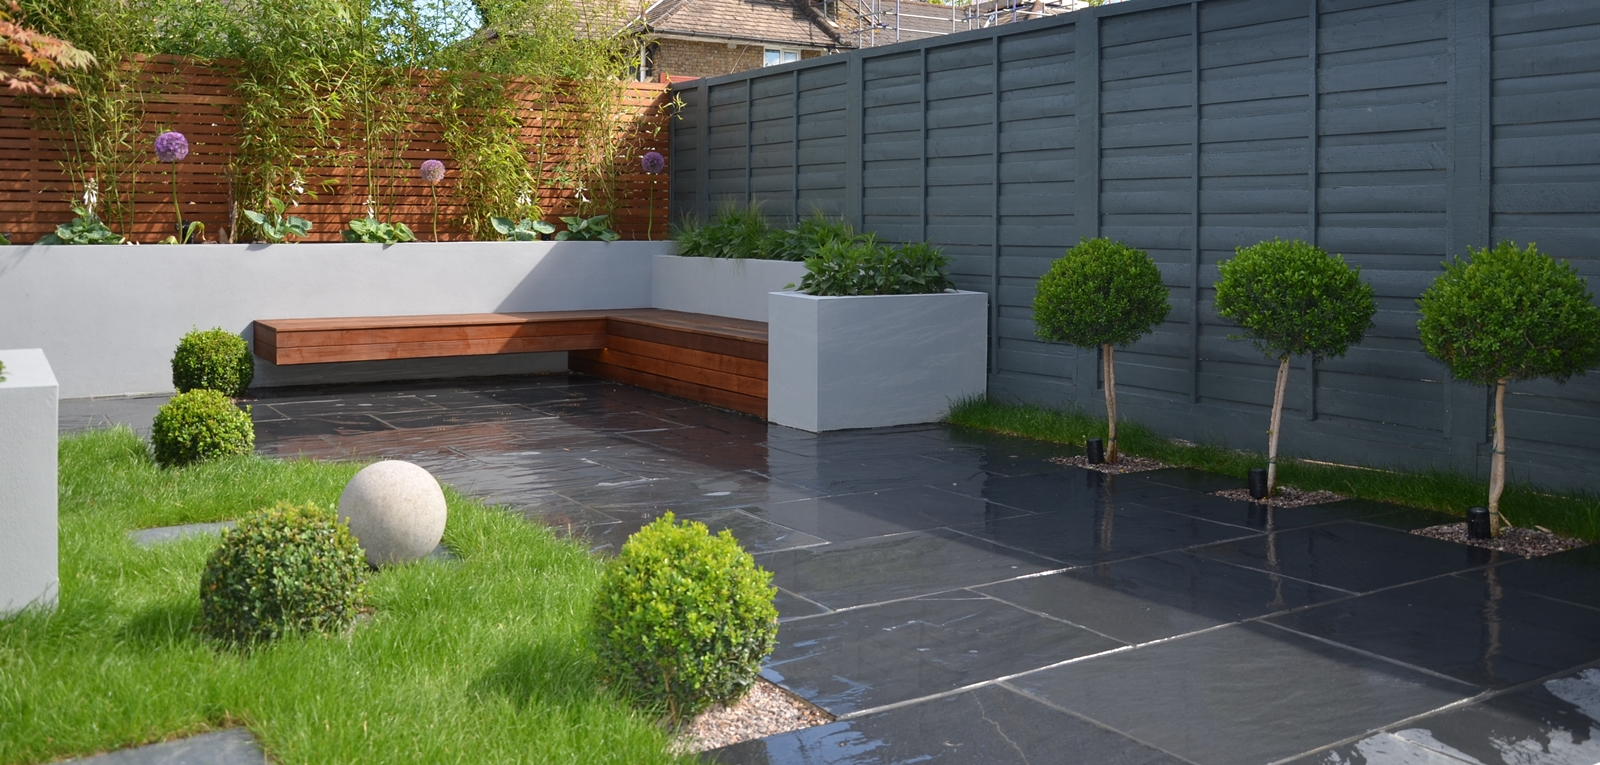 Landscaping london garden design for Large low maintenance garden